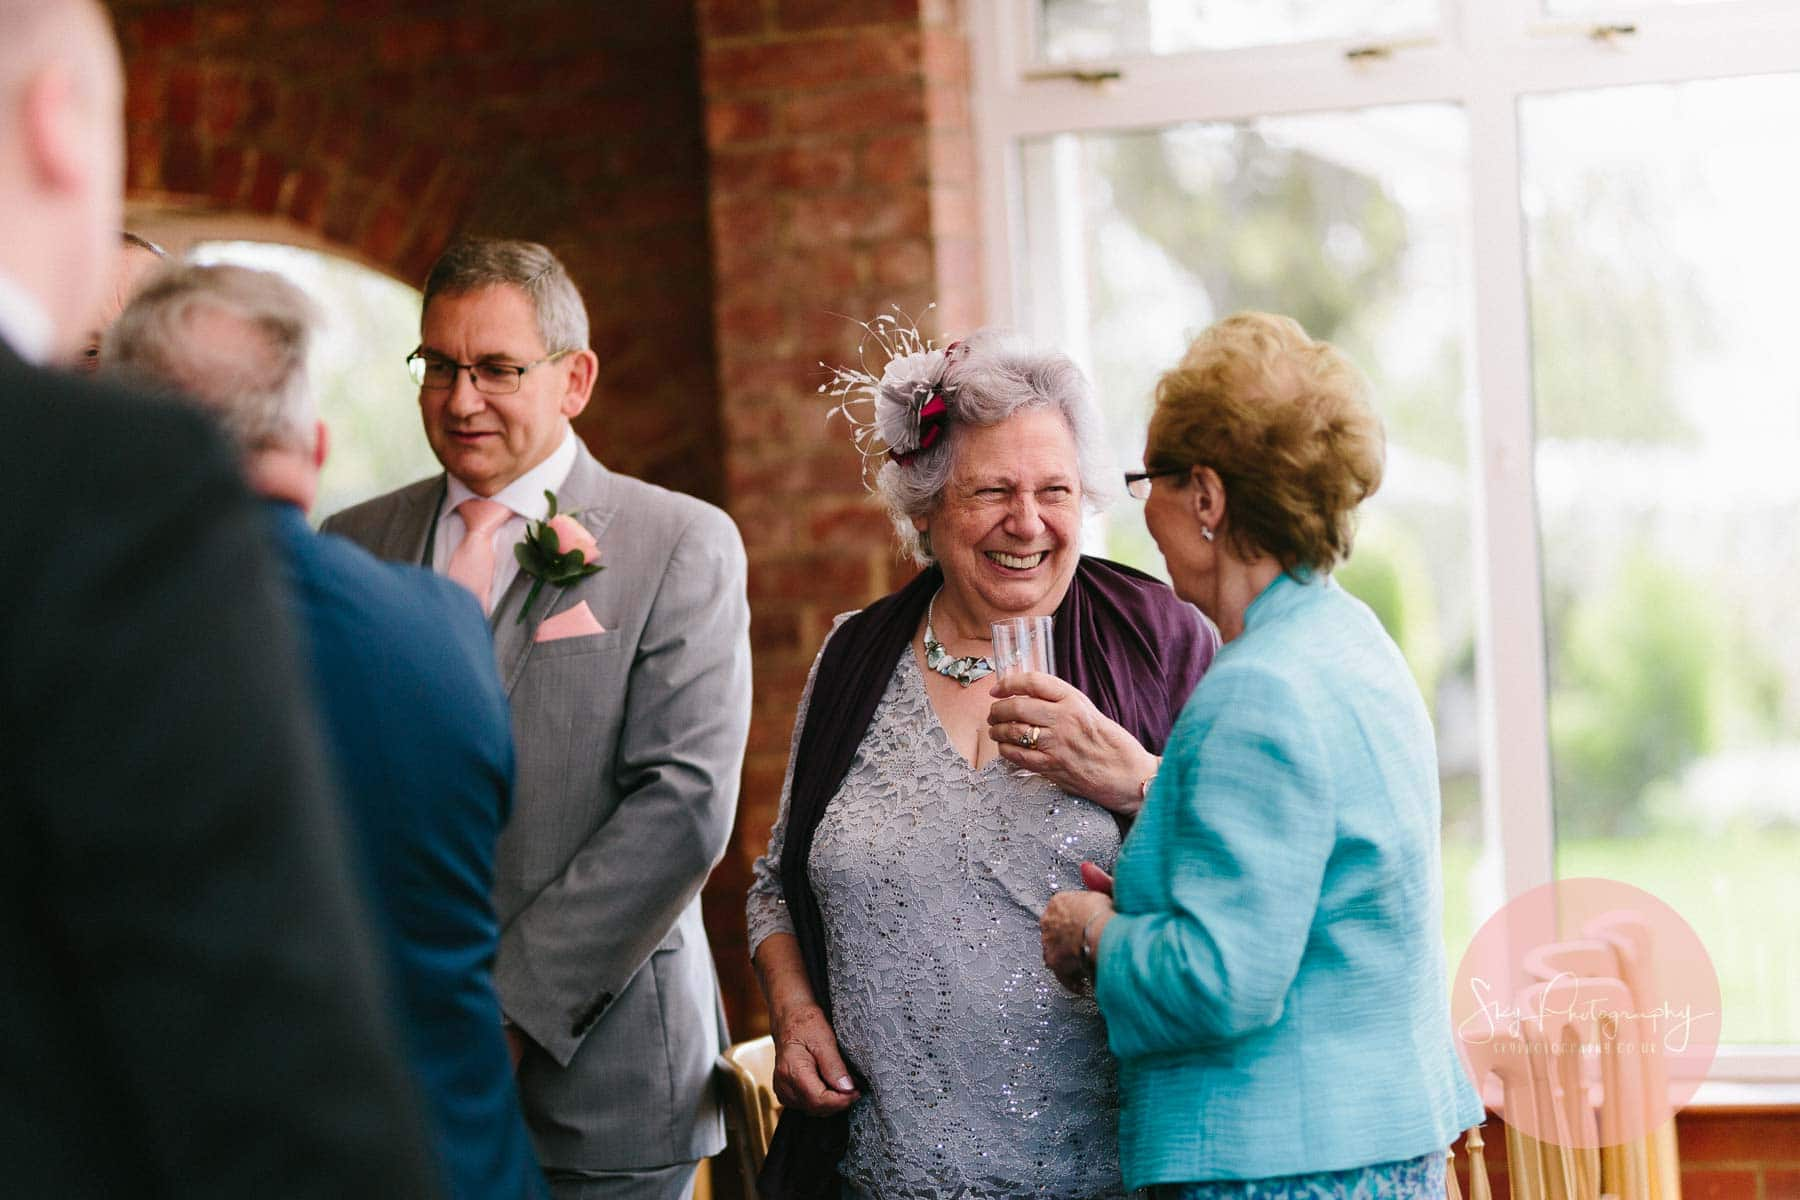 Guests laughing and joking at wedding